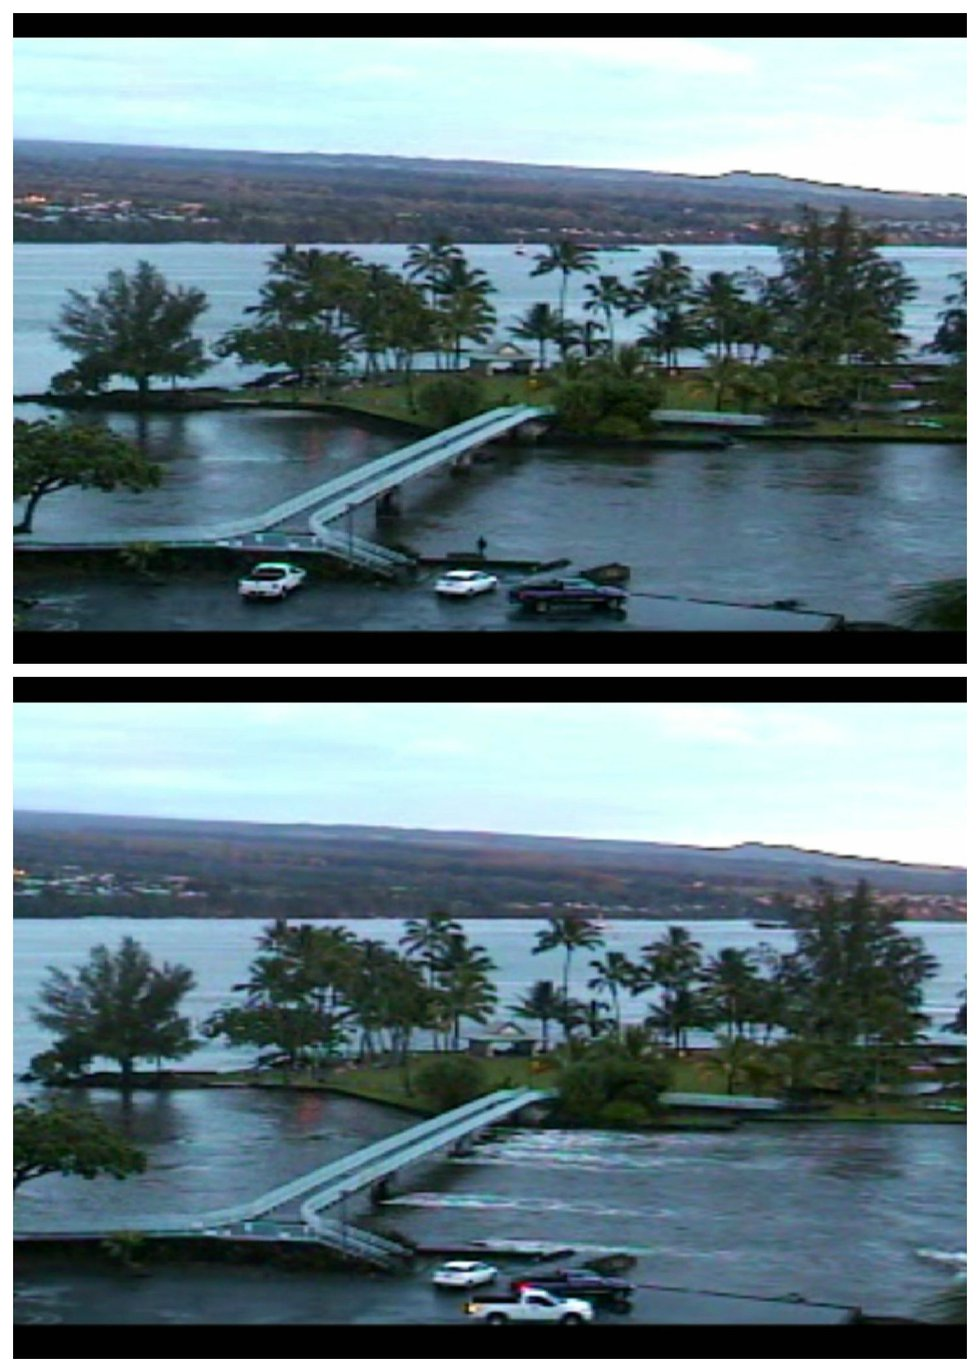 Hilo Bay webcam shows before and after photos at around 6 a.m.